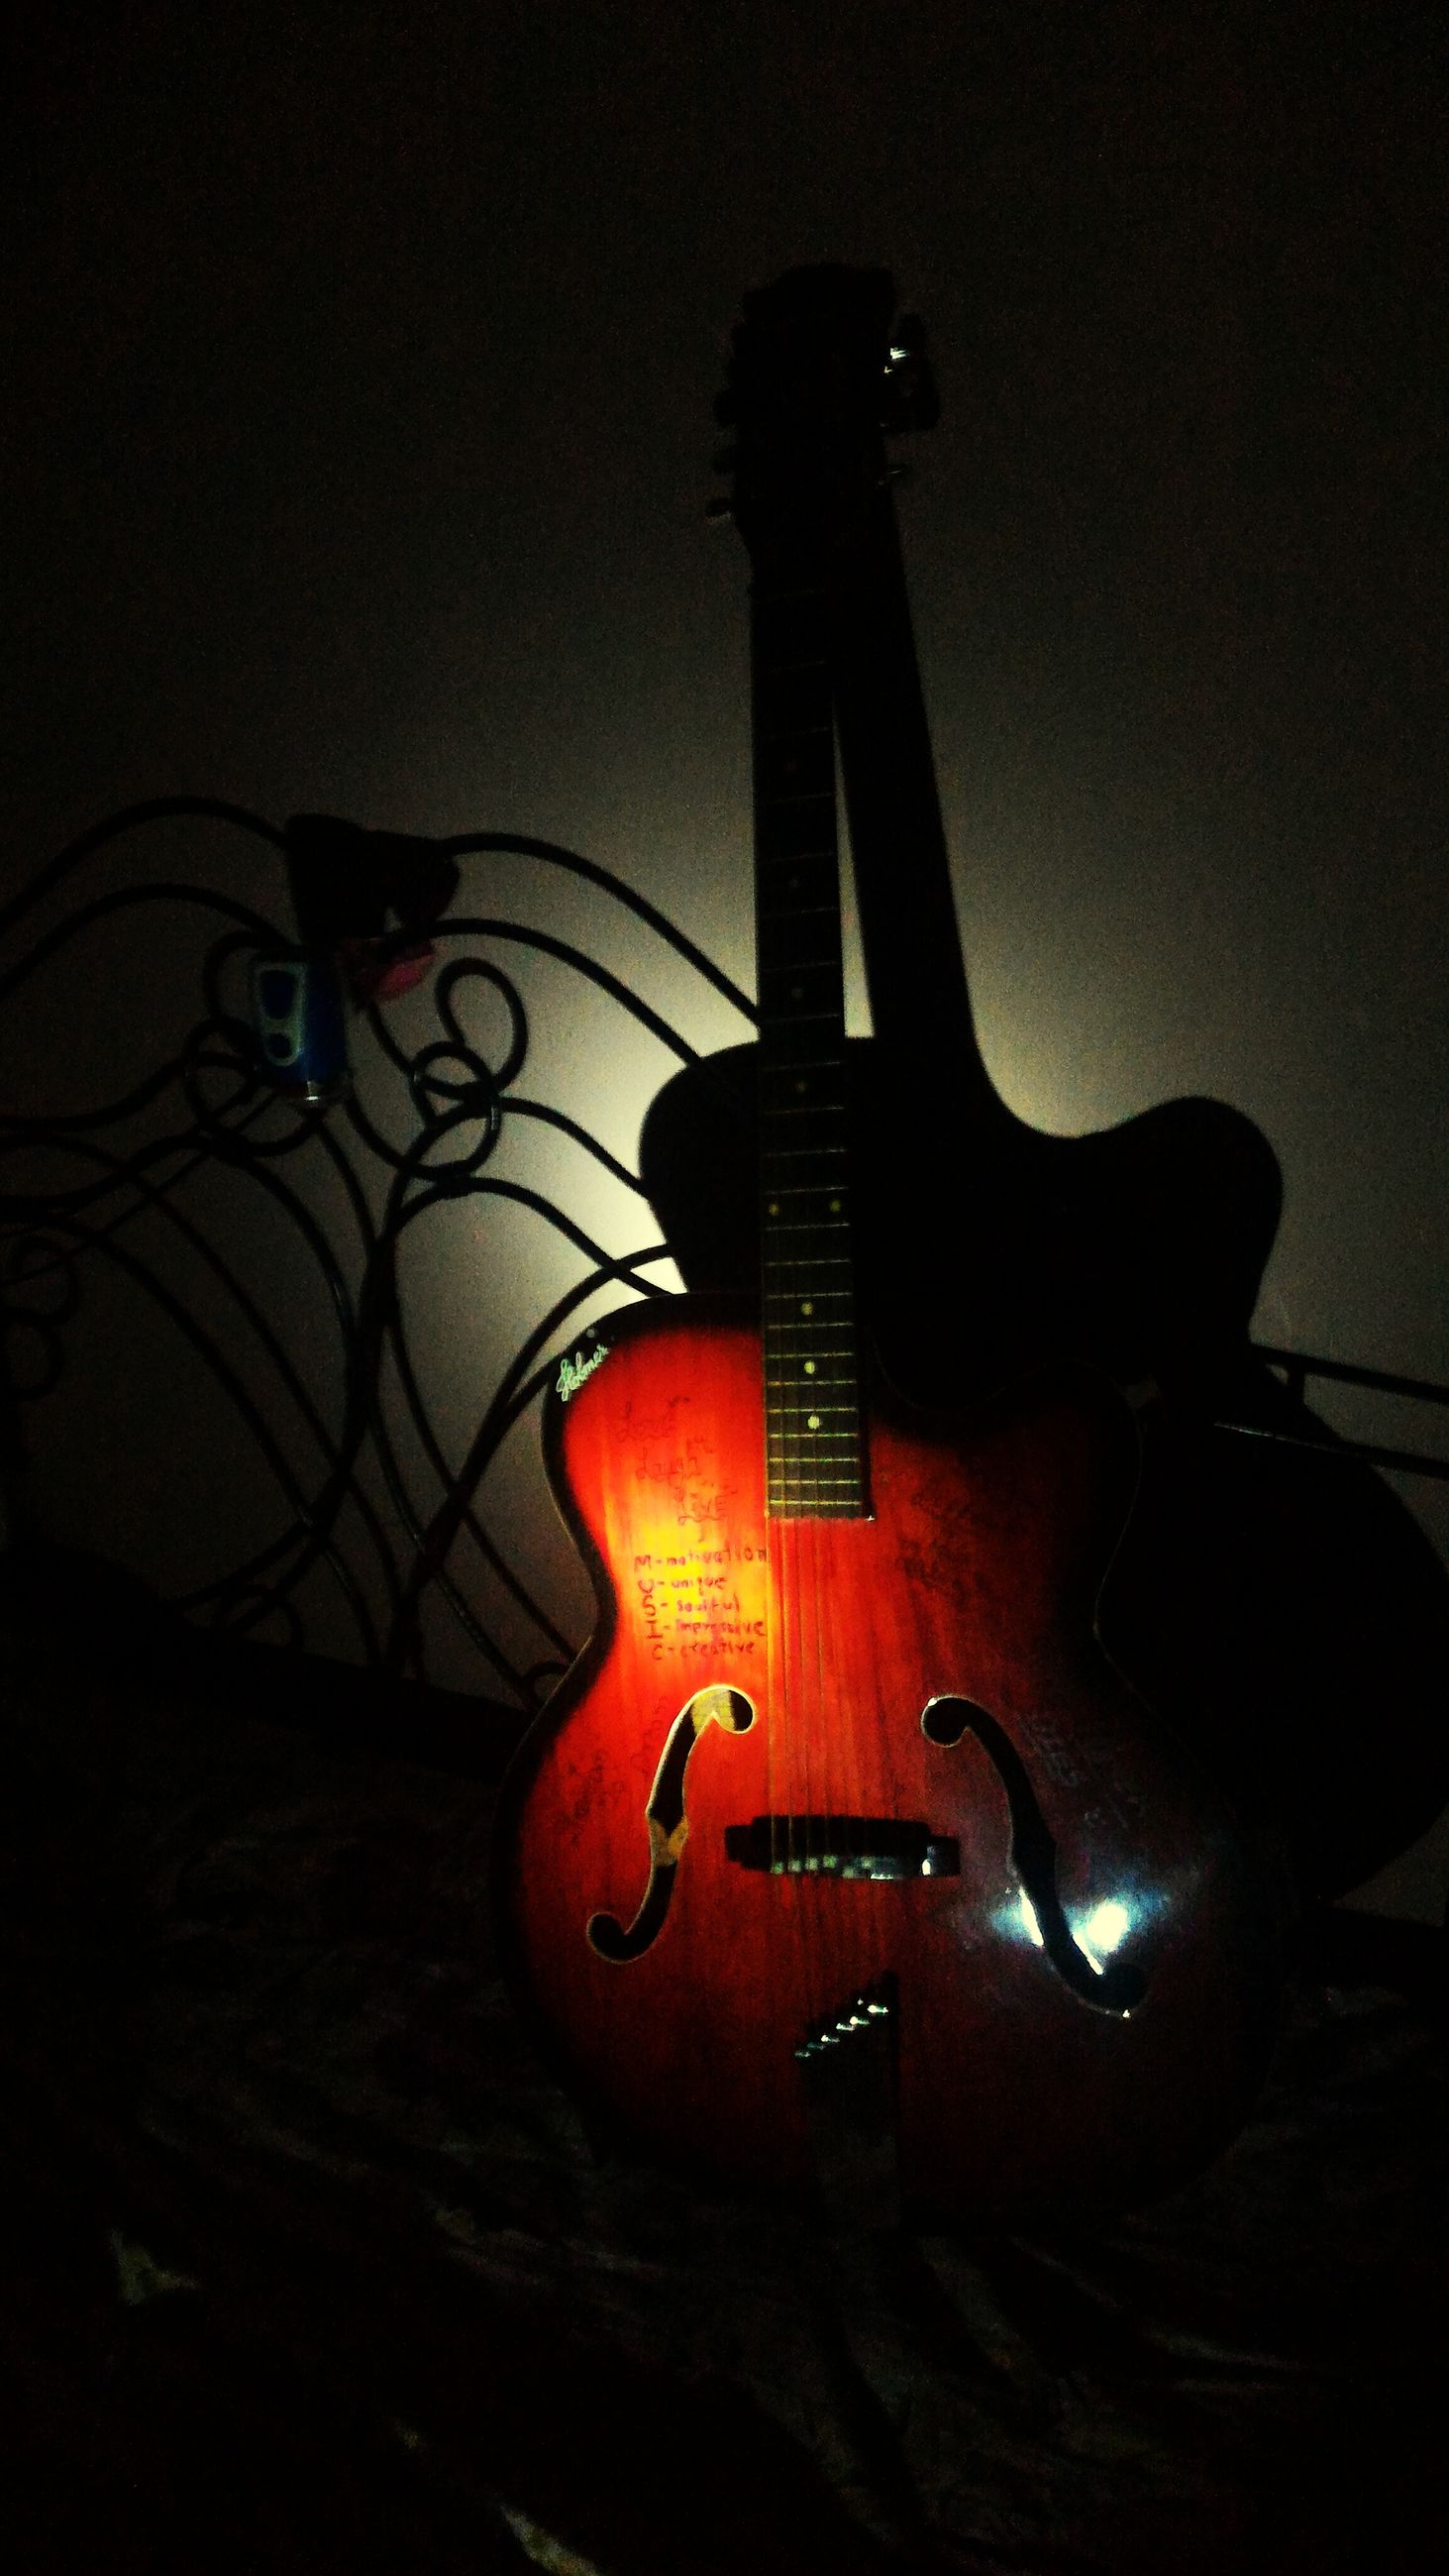 music, musical instrument, illuminated, arts culture and entertainment, low angle view, night, indoors, guitar, lighting equipment, close-up, single object, musical instrument string, electricity, musical equipment, metal, still life, light - natural phenomenon, no people, old-fashioned, technology